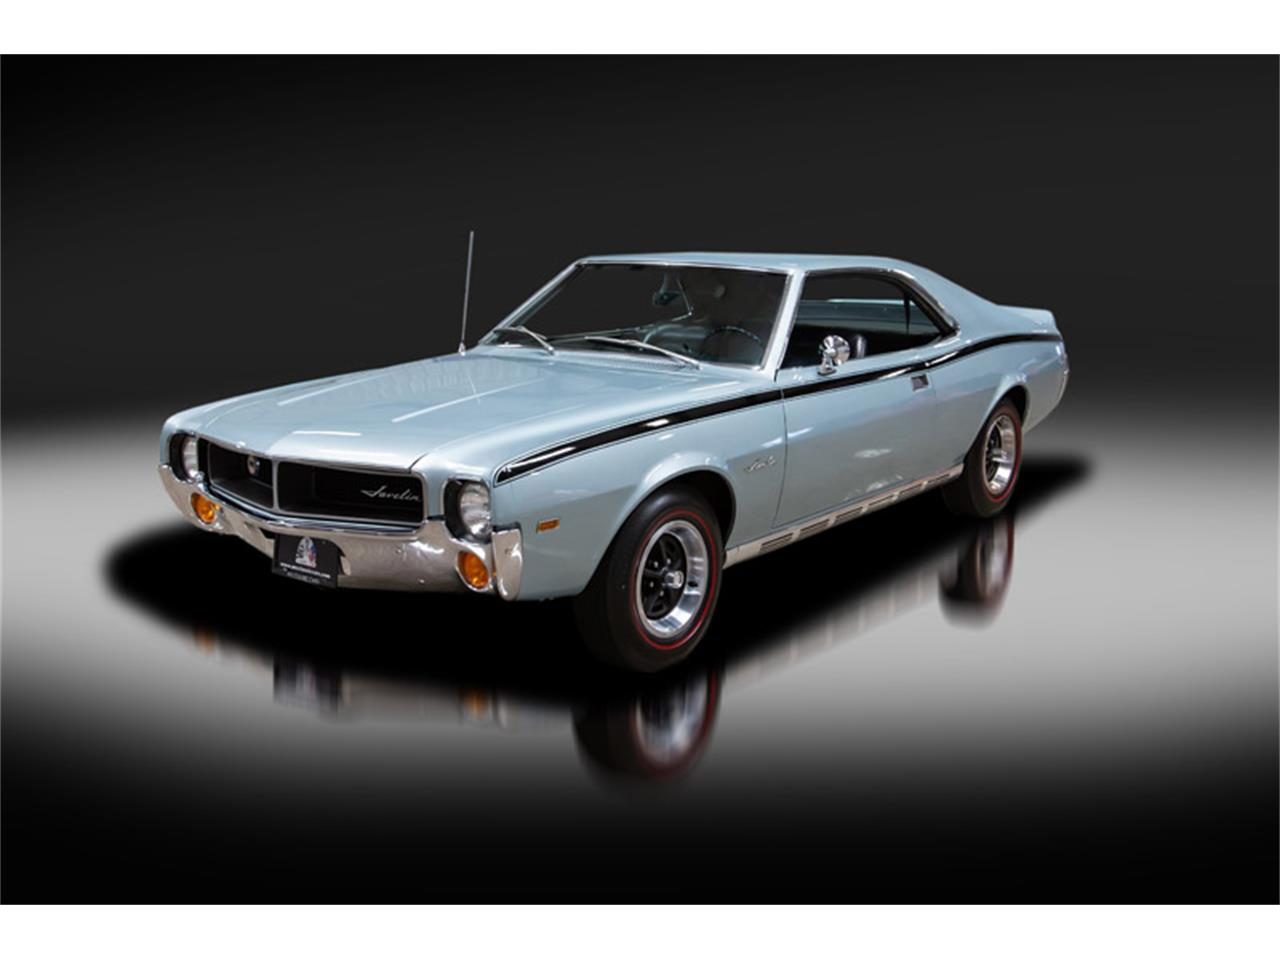 Large Picture of Classic '68 AMC Javelin located in Seekonk Massachusetts Auction Vehicle - QQC7